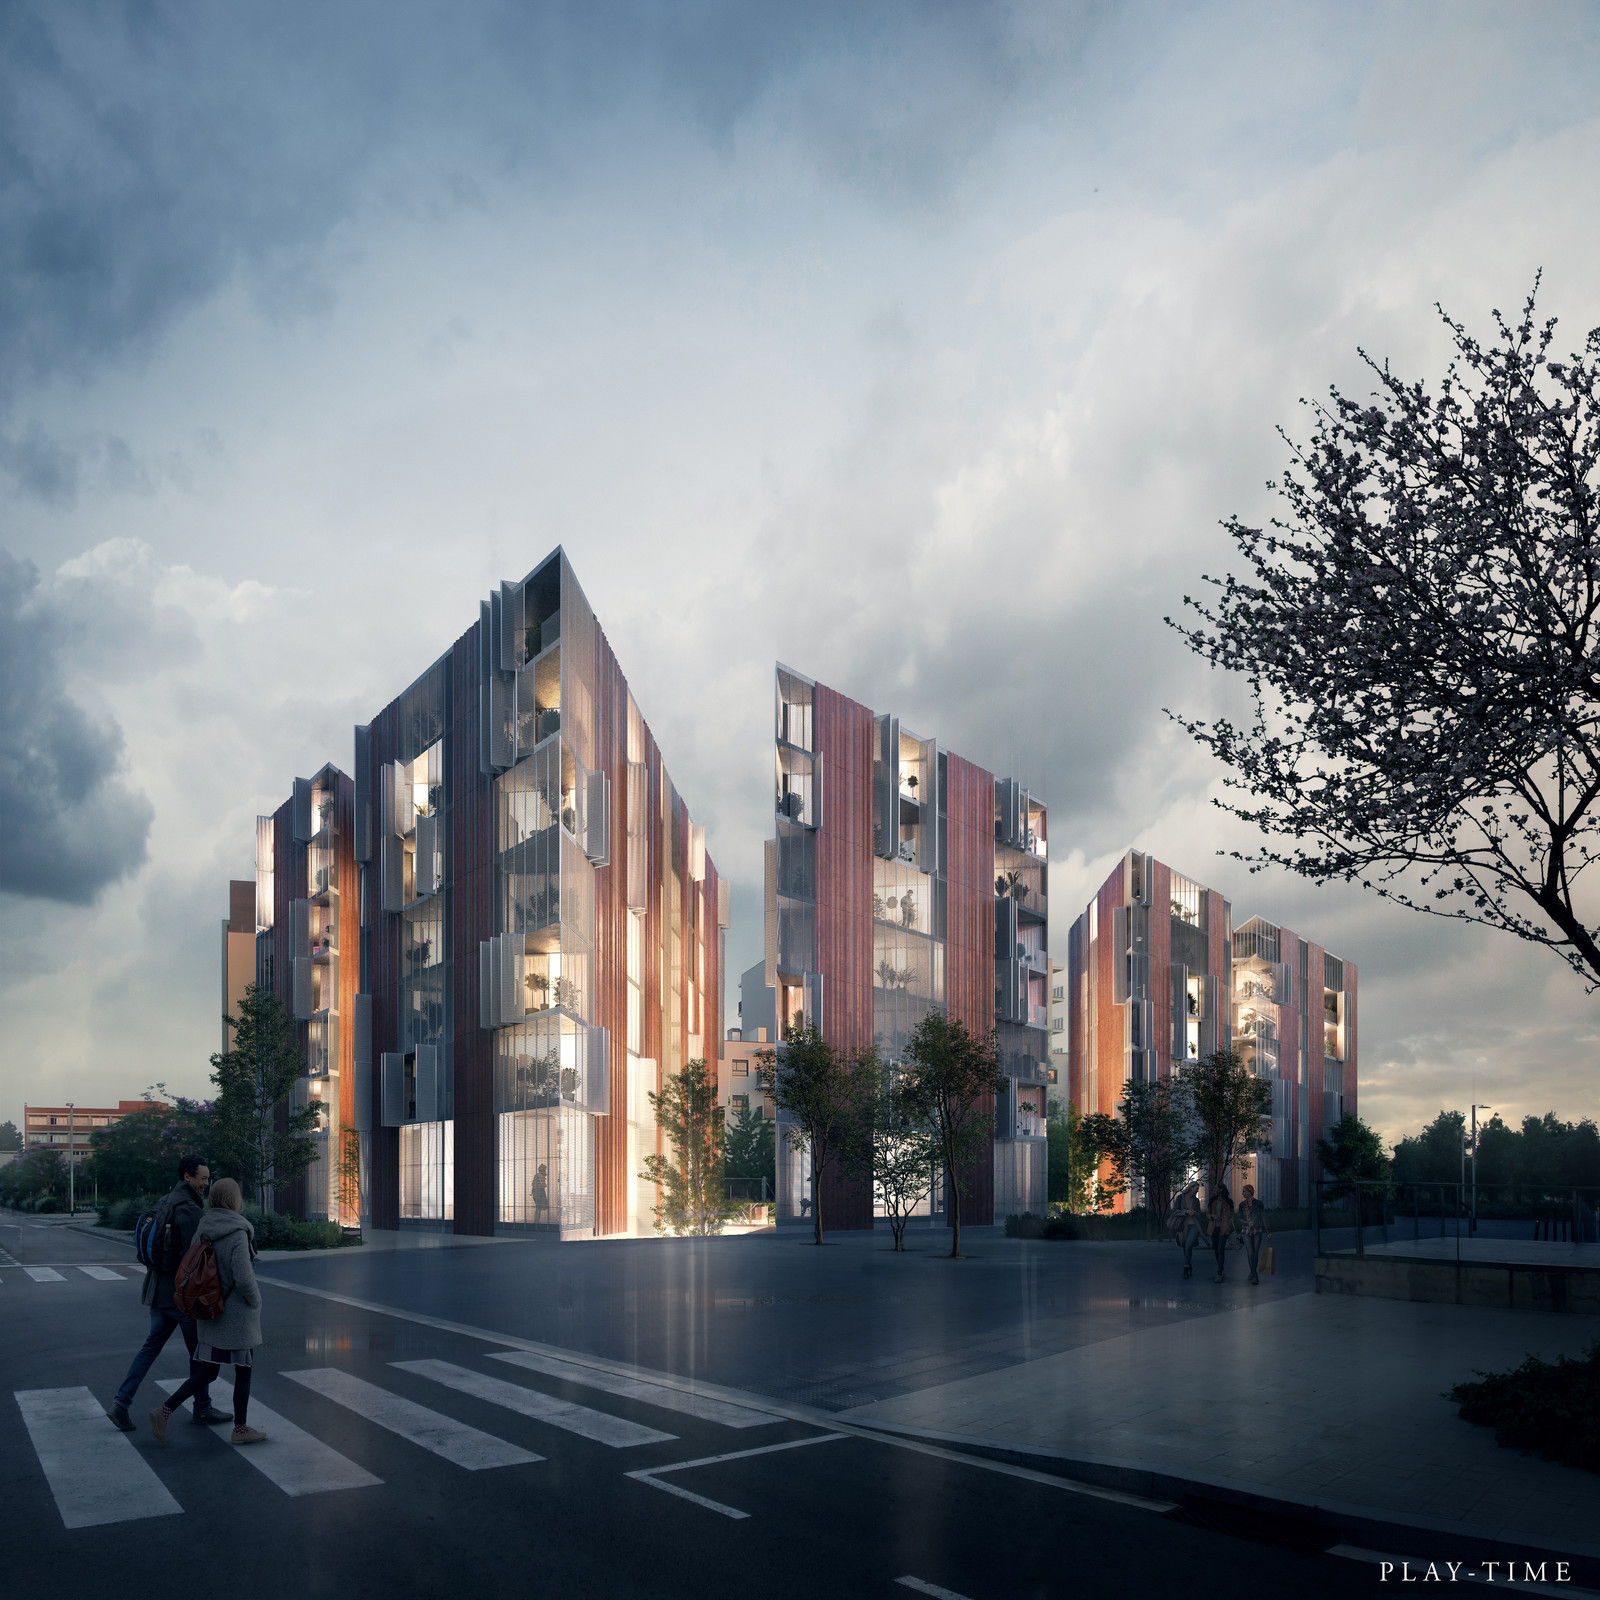 Ulldecona Street housing competition